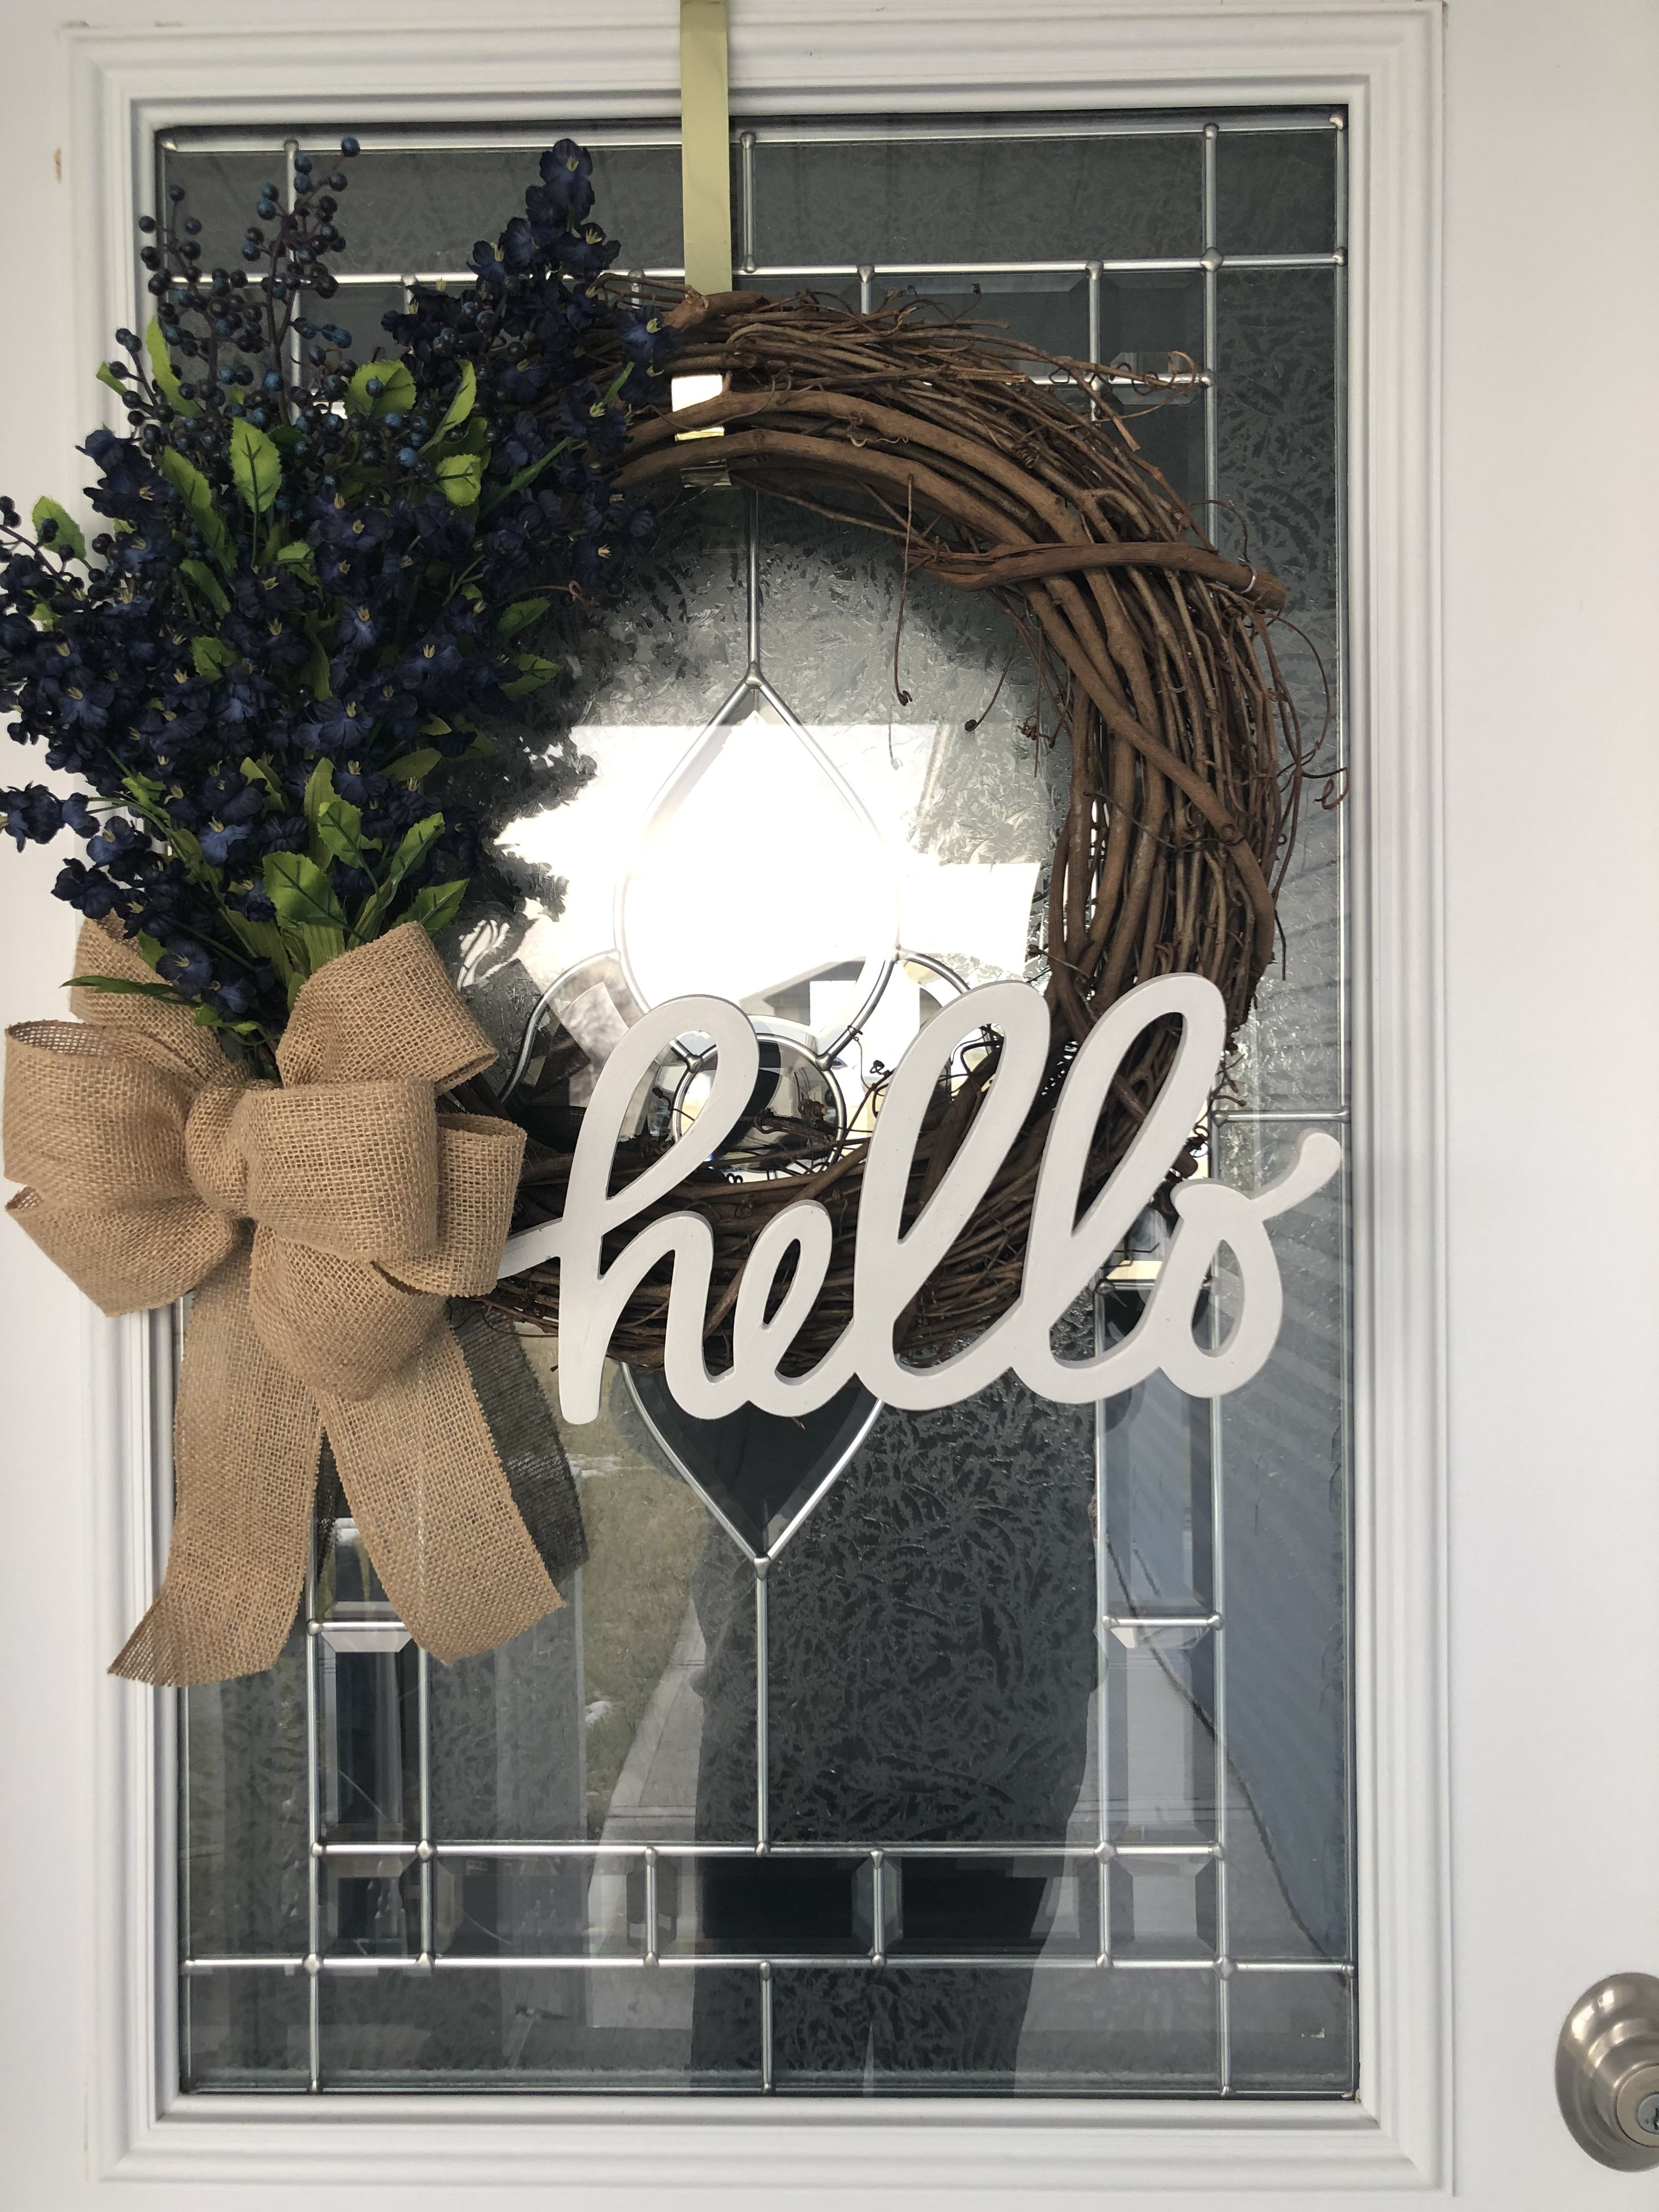 Hobby Lobby Grapevine Wreath 4 99 Chipboard Hello 3 99 Before 50 Paper Studio Discount Silk Plastic Flowers Grapevine Wreath Hobby Gifts Grape Vines